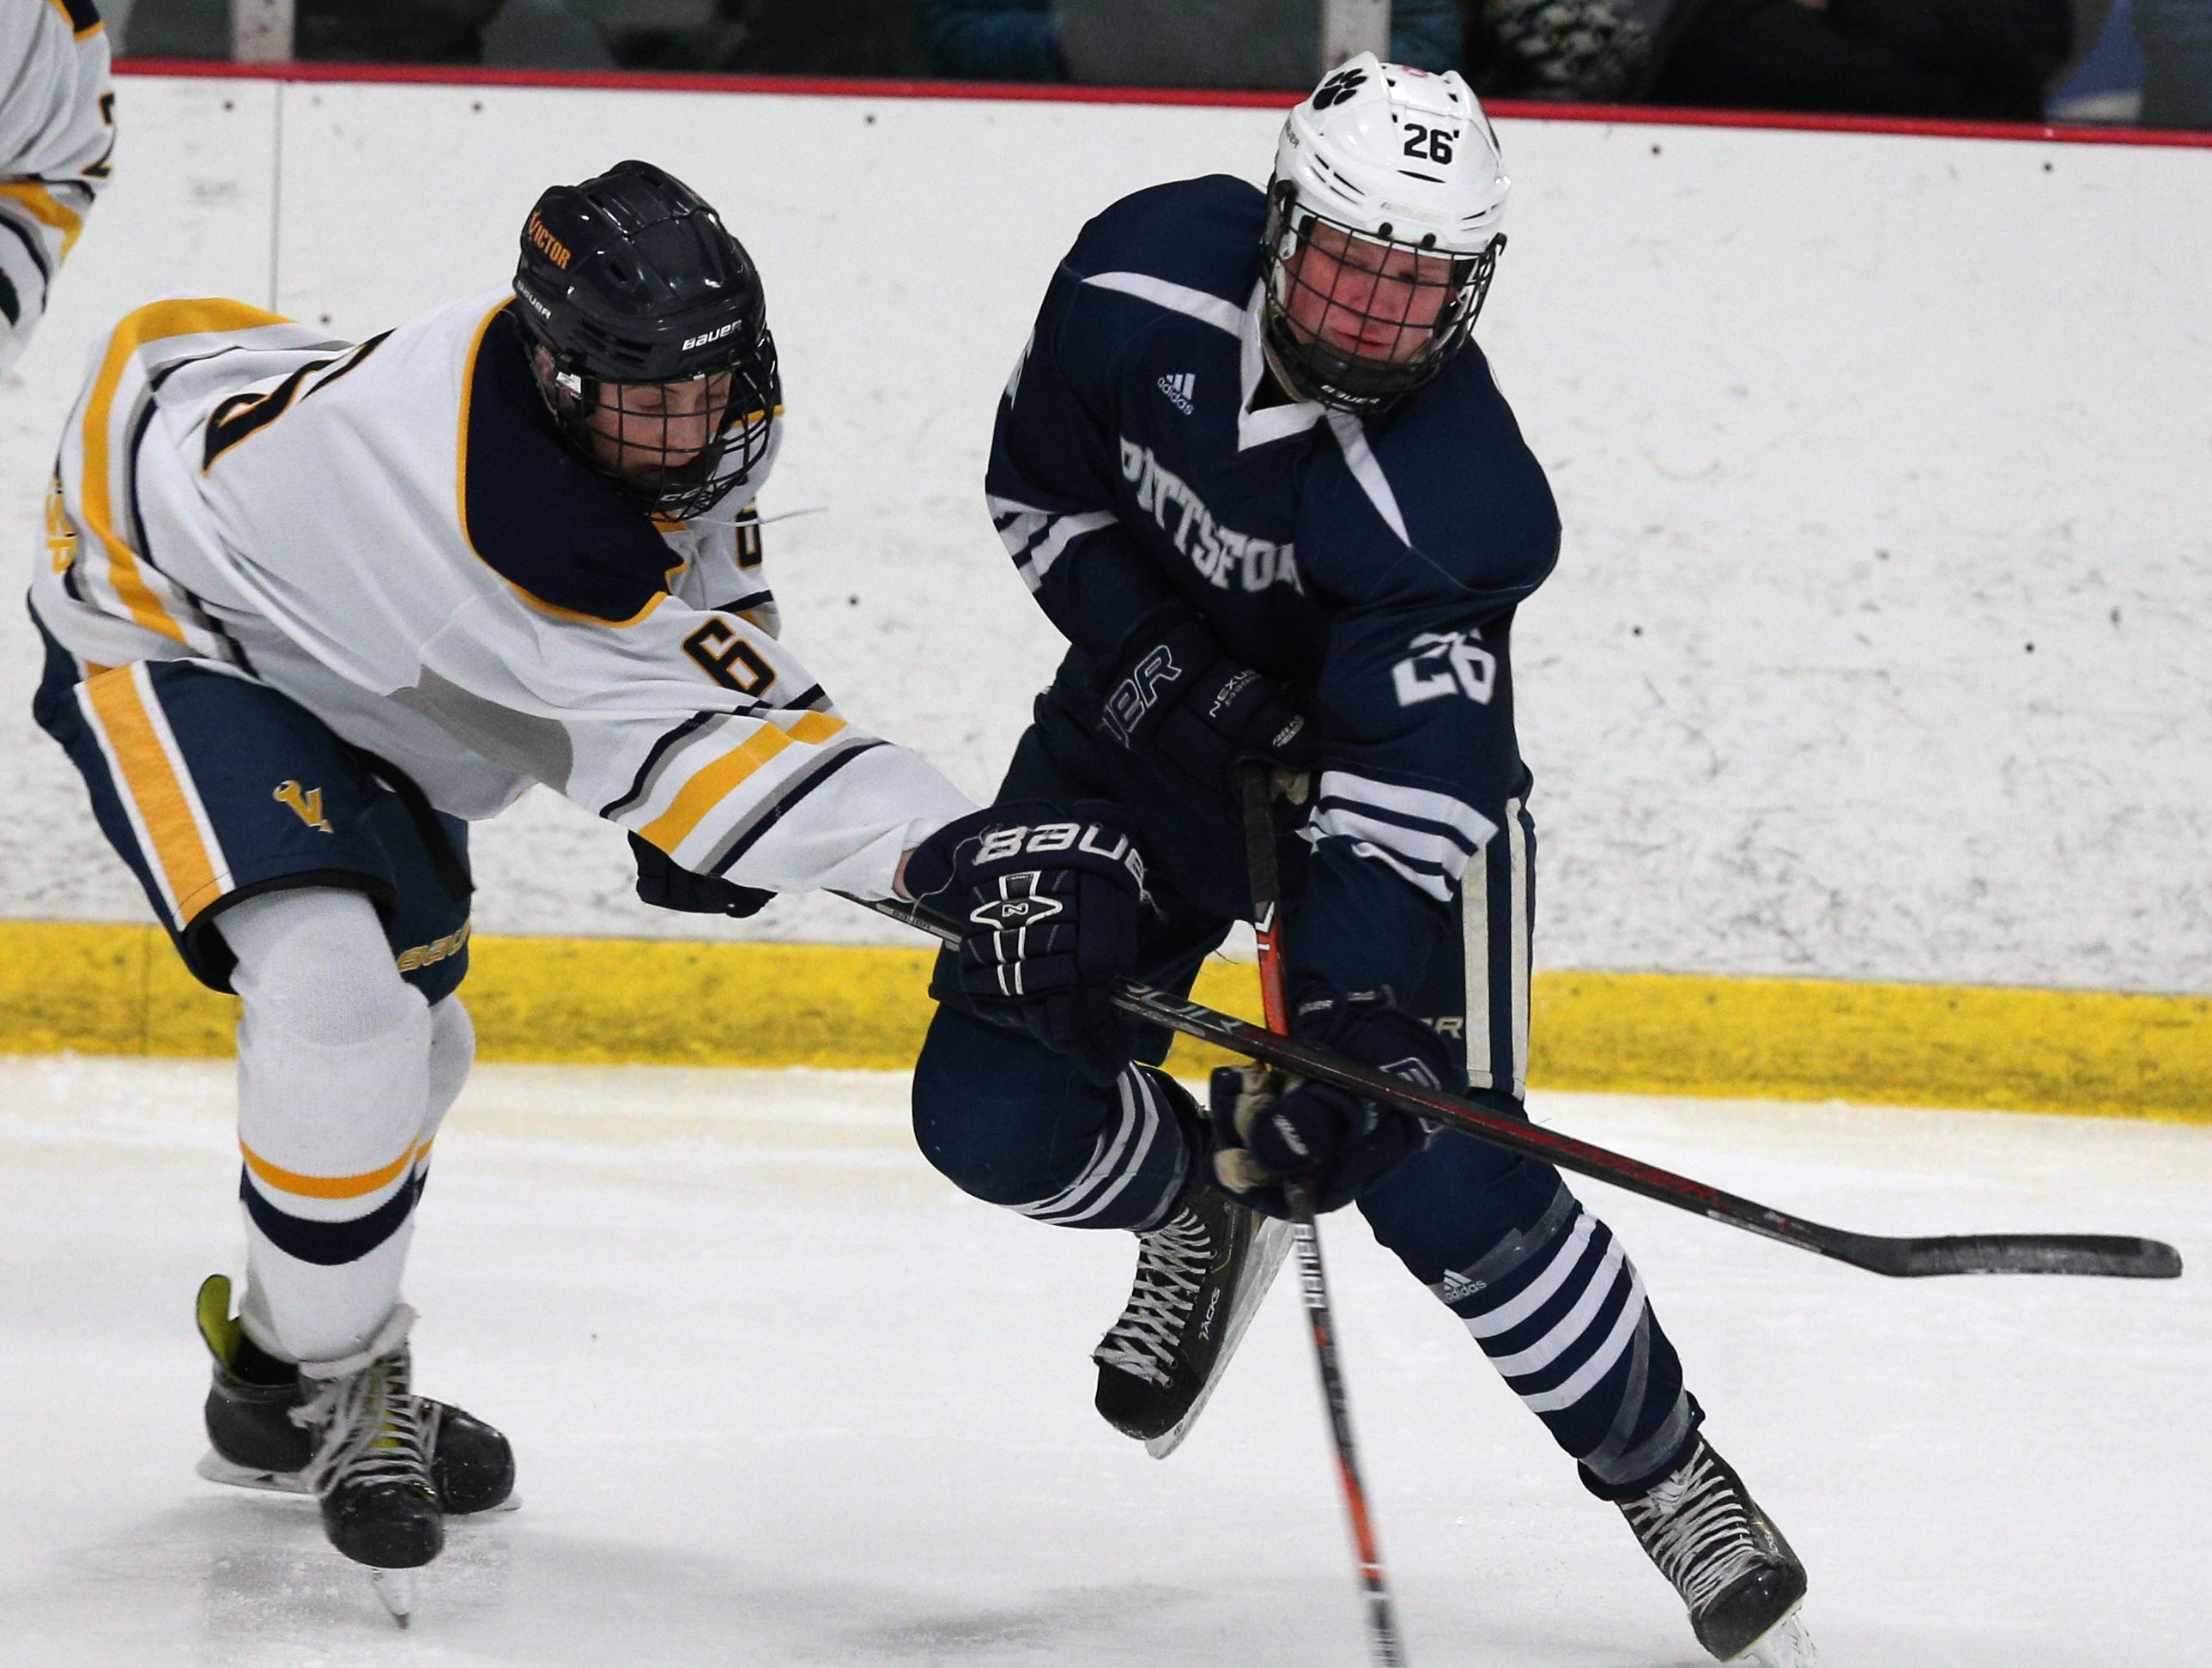 Victor  #6  Steven Armstrong against Pittsford # 26 Ronin VanDamme.